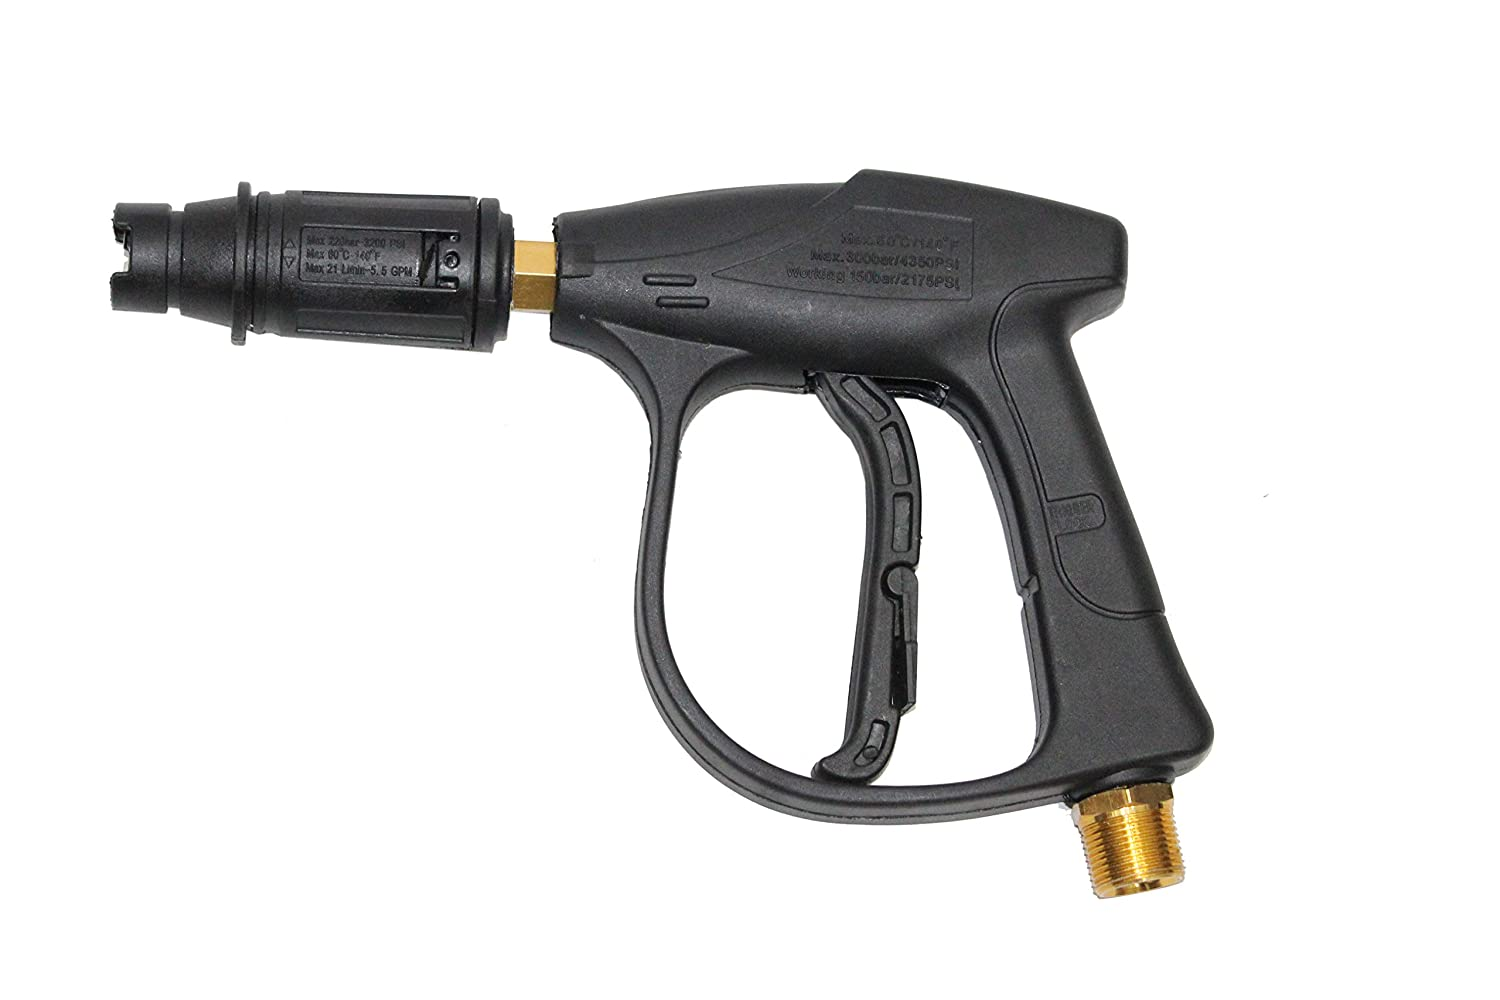 Digital Craft High Pressure Washer Gun, 3000 PSI Water Jet, Car Cleaning  Pressure Power Washers, Quick Release for Car Washers, Water Gun Tools:  Amazon.in: Home Improvement